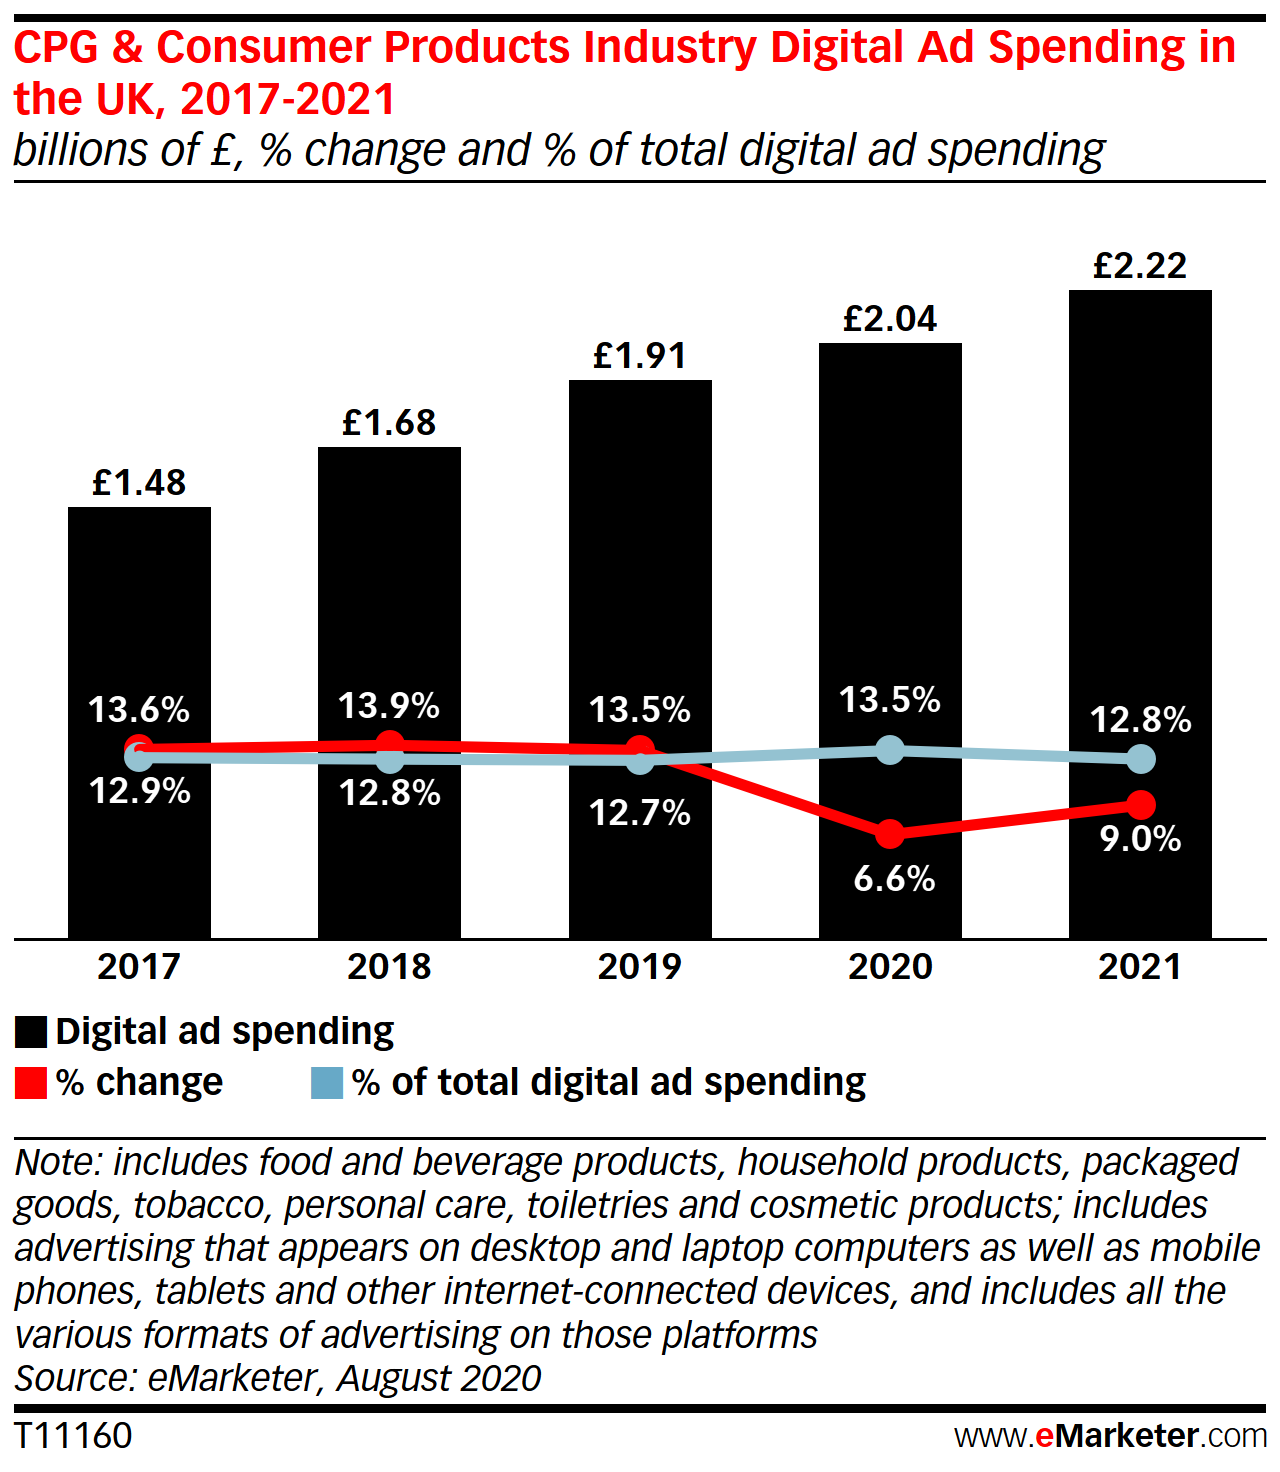 CPG & Consumer Products Industry Digital Ad Spending in the UK, 2017-2021 (billions of £, % change and % of total digital ad spending)